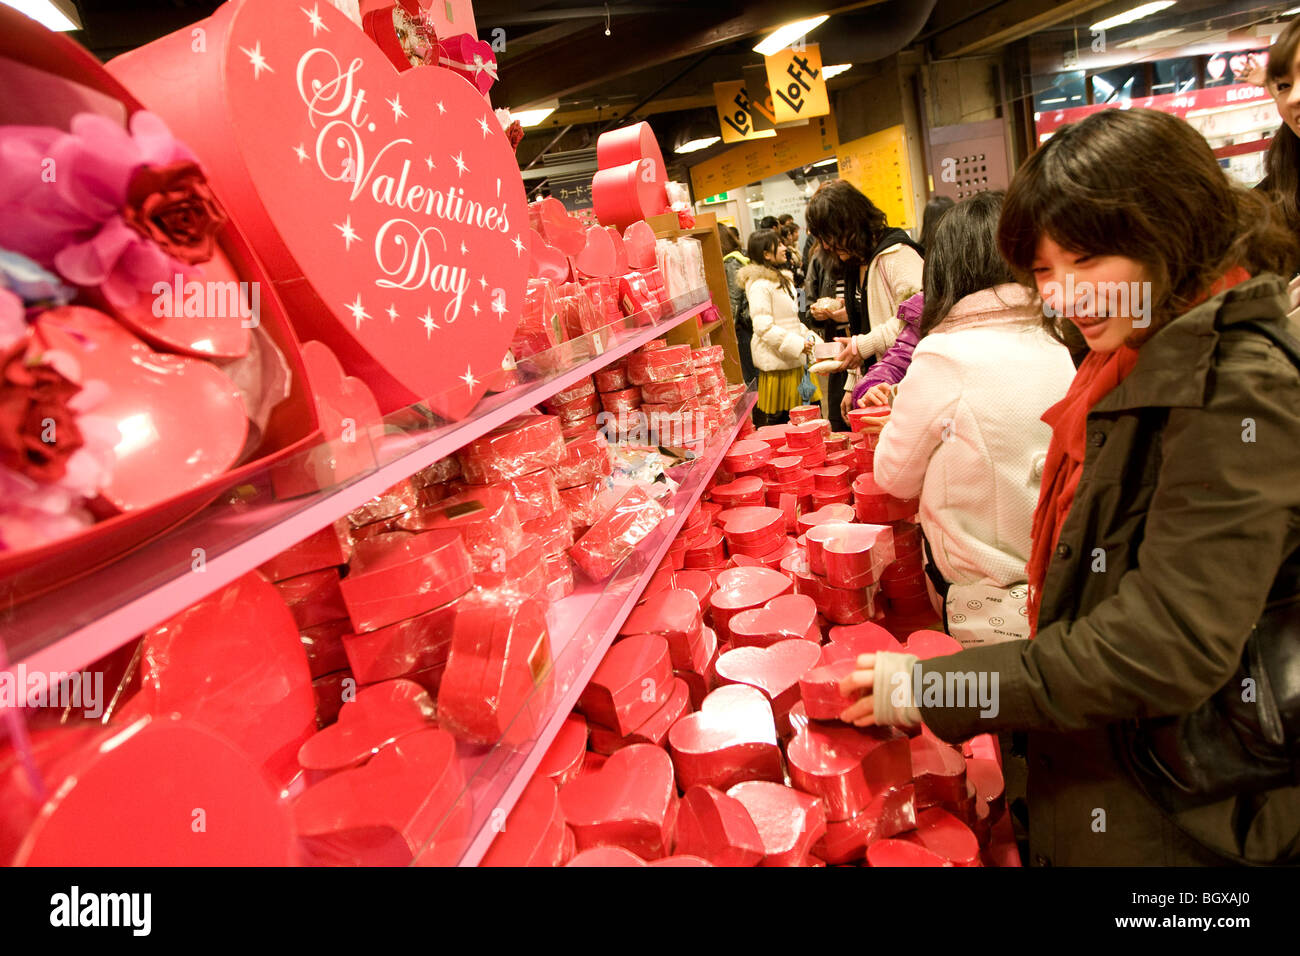 St Valentine S Day Advertising And Sales Promotions In Department